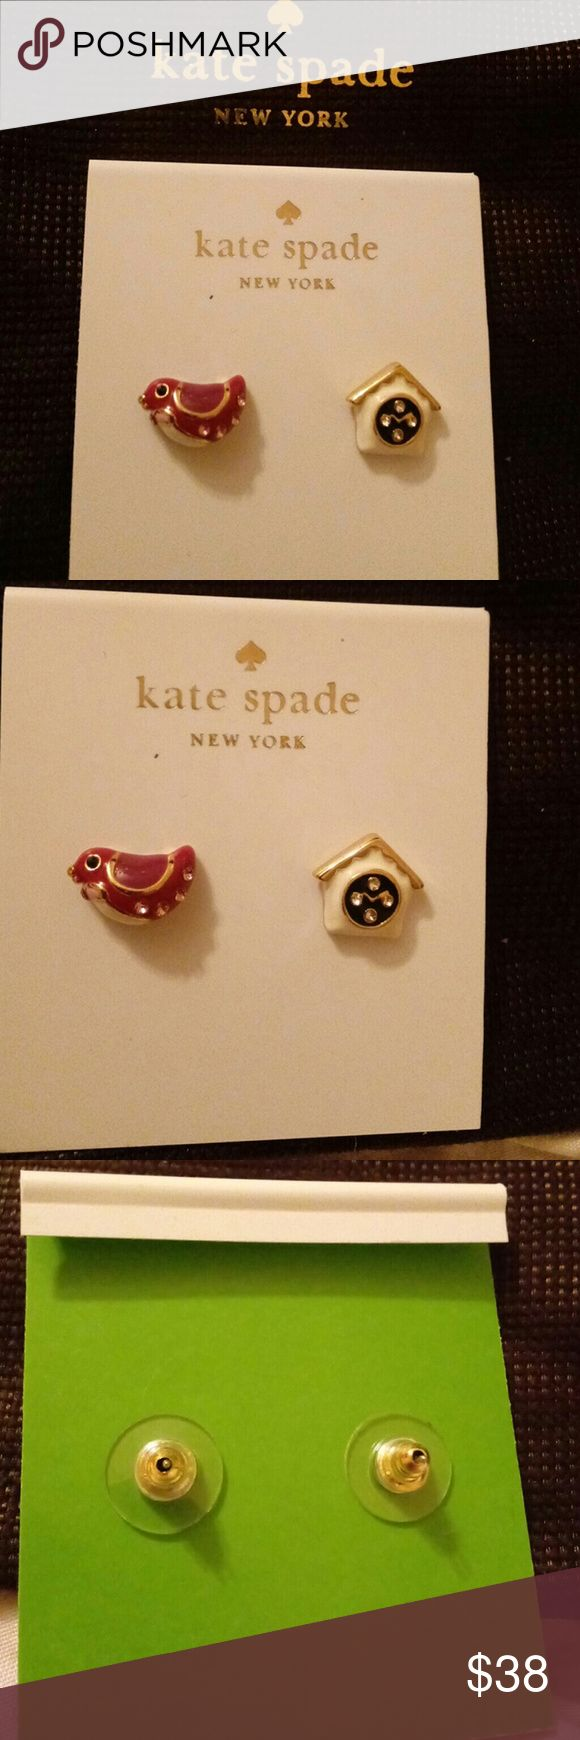 """Kate Spade New Bird/House Stud Earrings w/Pouch These adorable & authentic Kate Spade Bird/ Birdhouse mismatch stud earrings will be a perfect for all your lovely fall/winter sweaters! Also makes a lovely gift for the bird lover in your life or just someone who loves adorable jewelry!  Features:  -Shiny 12-karat gold plated metal with glass stones and enamel fill -Steel posts -Post back -Approximate diameter: 1/2"""" -Comes on earring card with kate spade brand pouch! -Retail: $58  Open to…"""